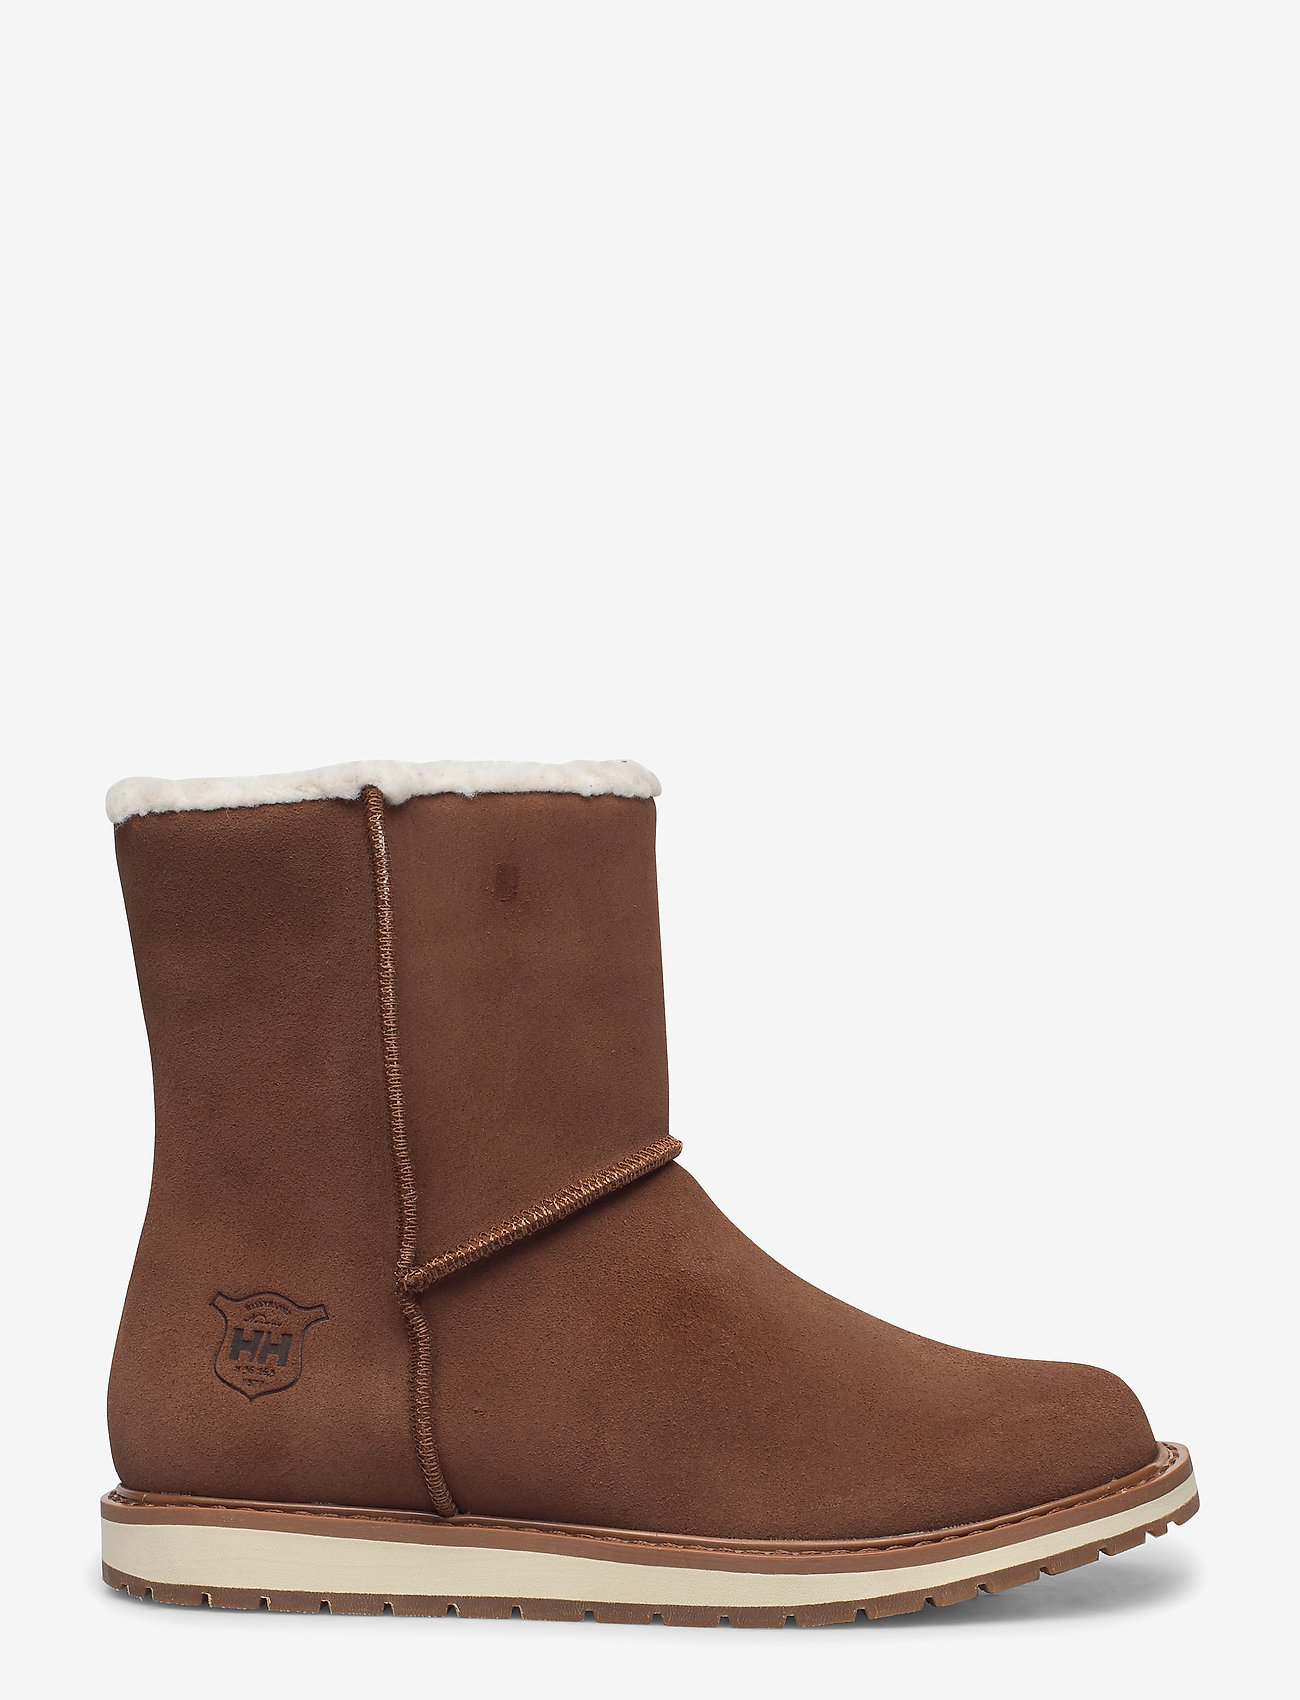 Helly Hansen - W ANNABELLE BOOT - flat ankle boots - 766 whiskey / natura / sperry - 1